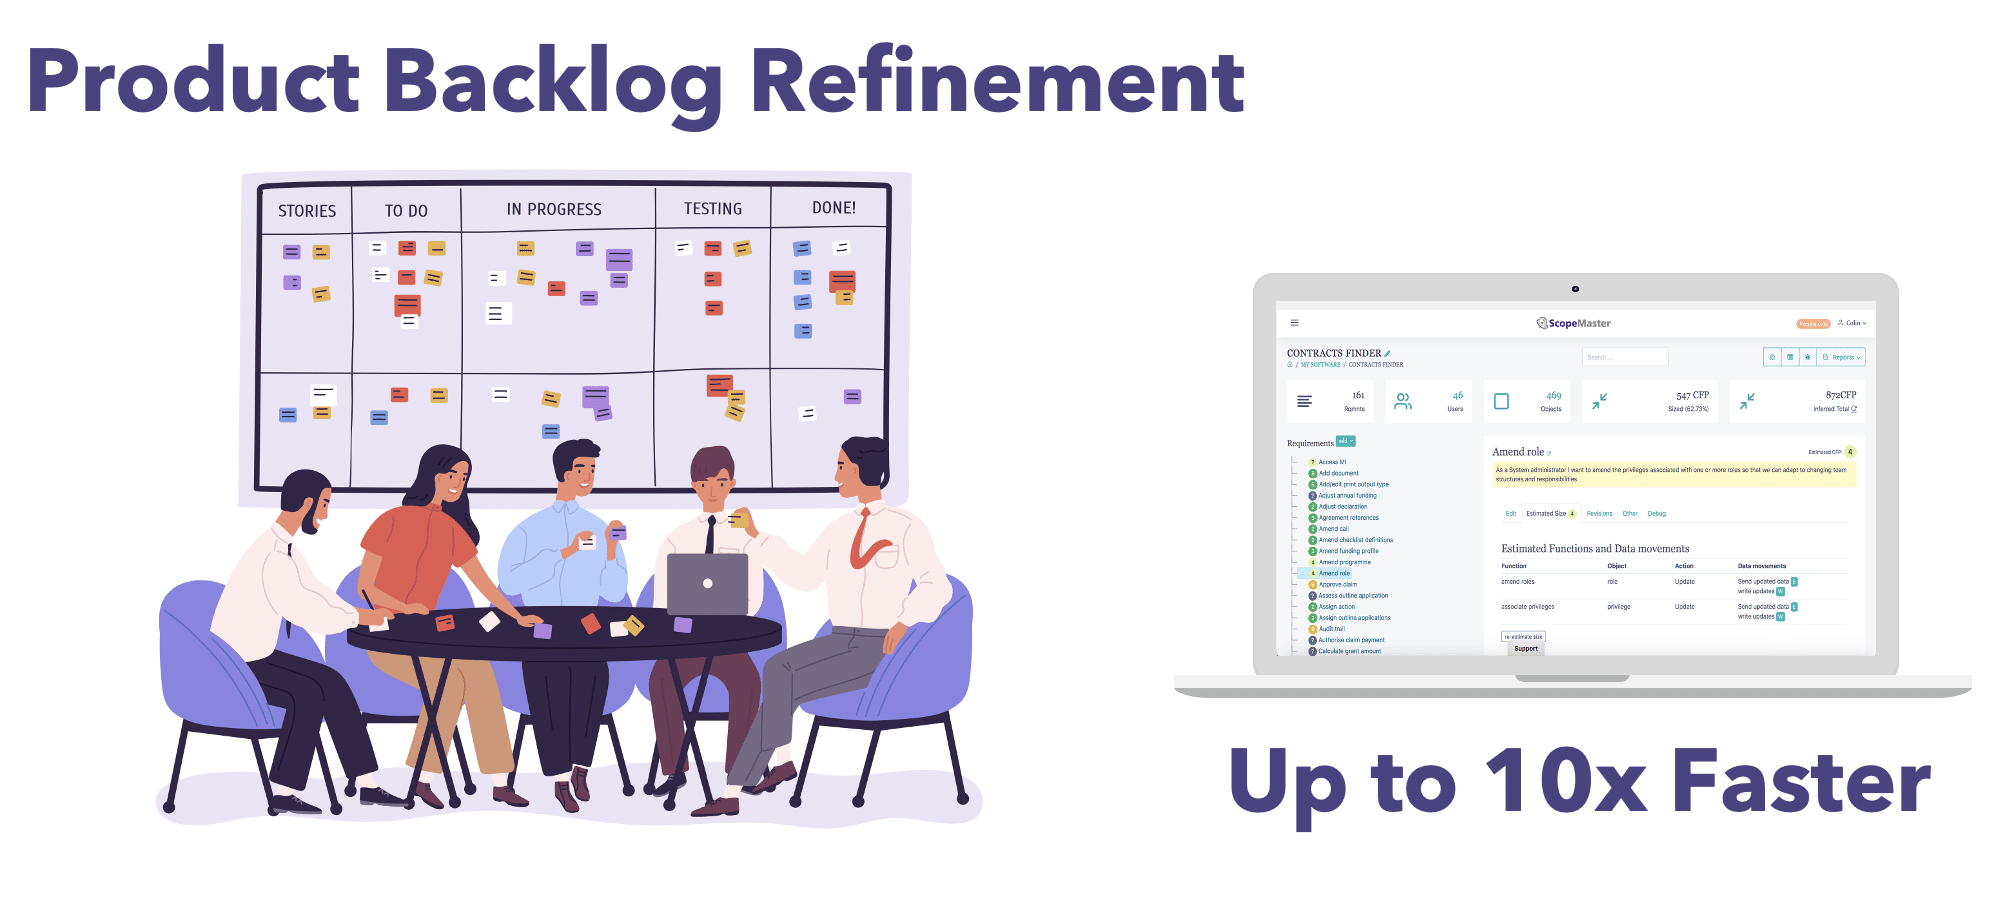 User story and backlog refinement accelerated with ScopeMaster, the ultimate in shift left testing